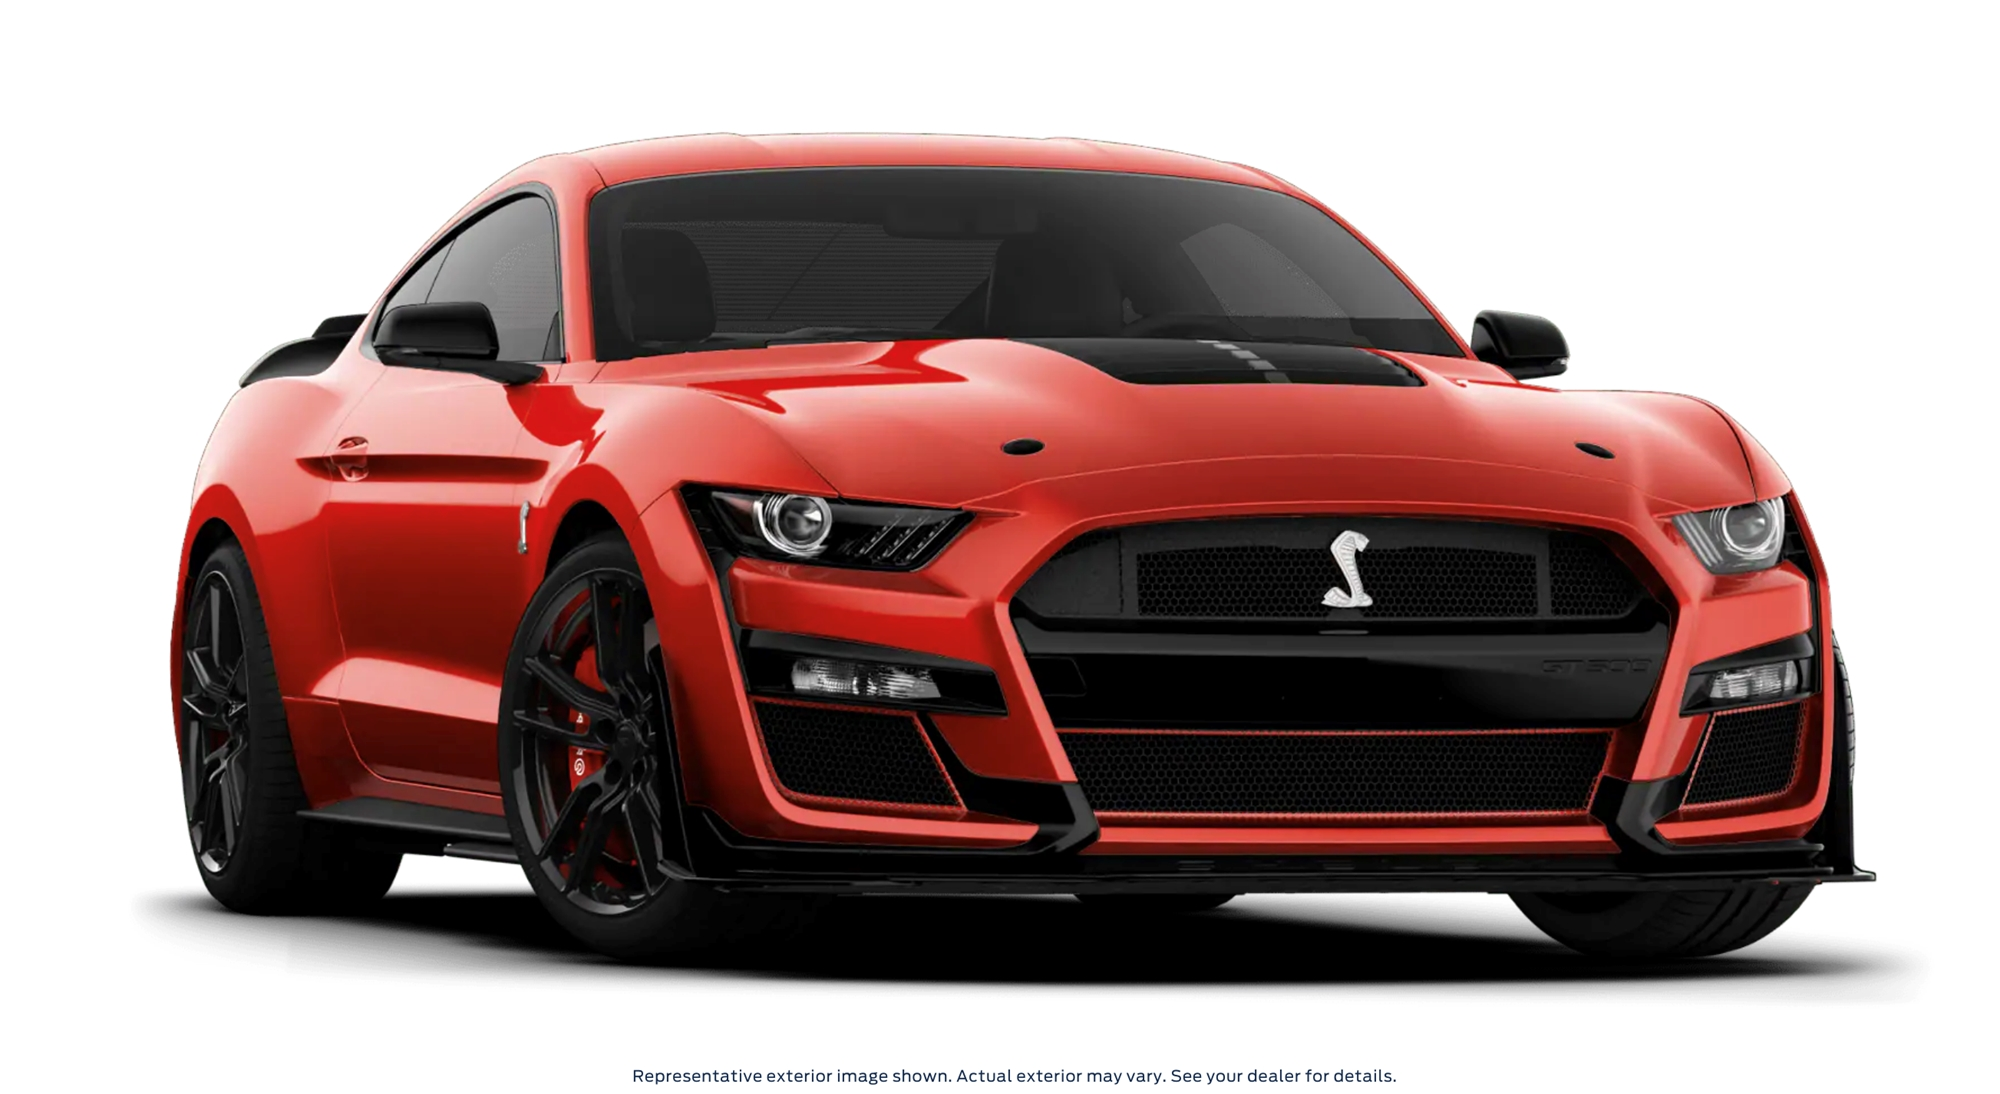 2020 Ford Mustang Shelby GT500 Full Specs, Features and ...